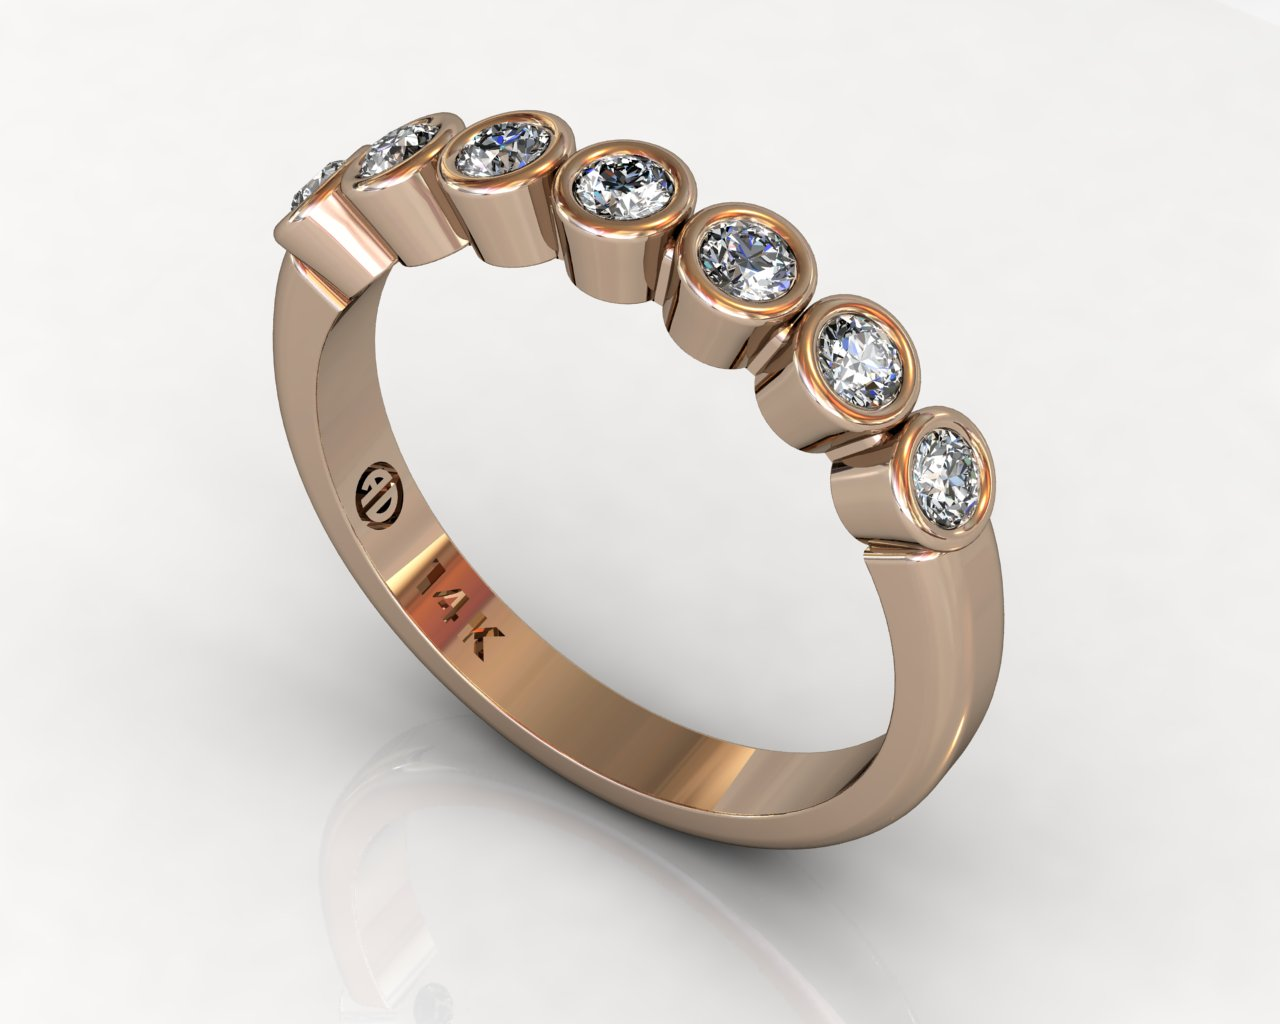 Wedding Bands Ladies 7 Stone Bezel Diamonds 0.29 TCW 14kt 3.17g Rose Gold South Bay Gold